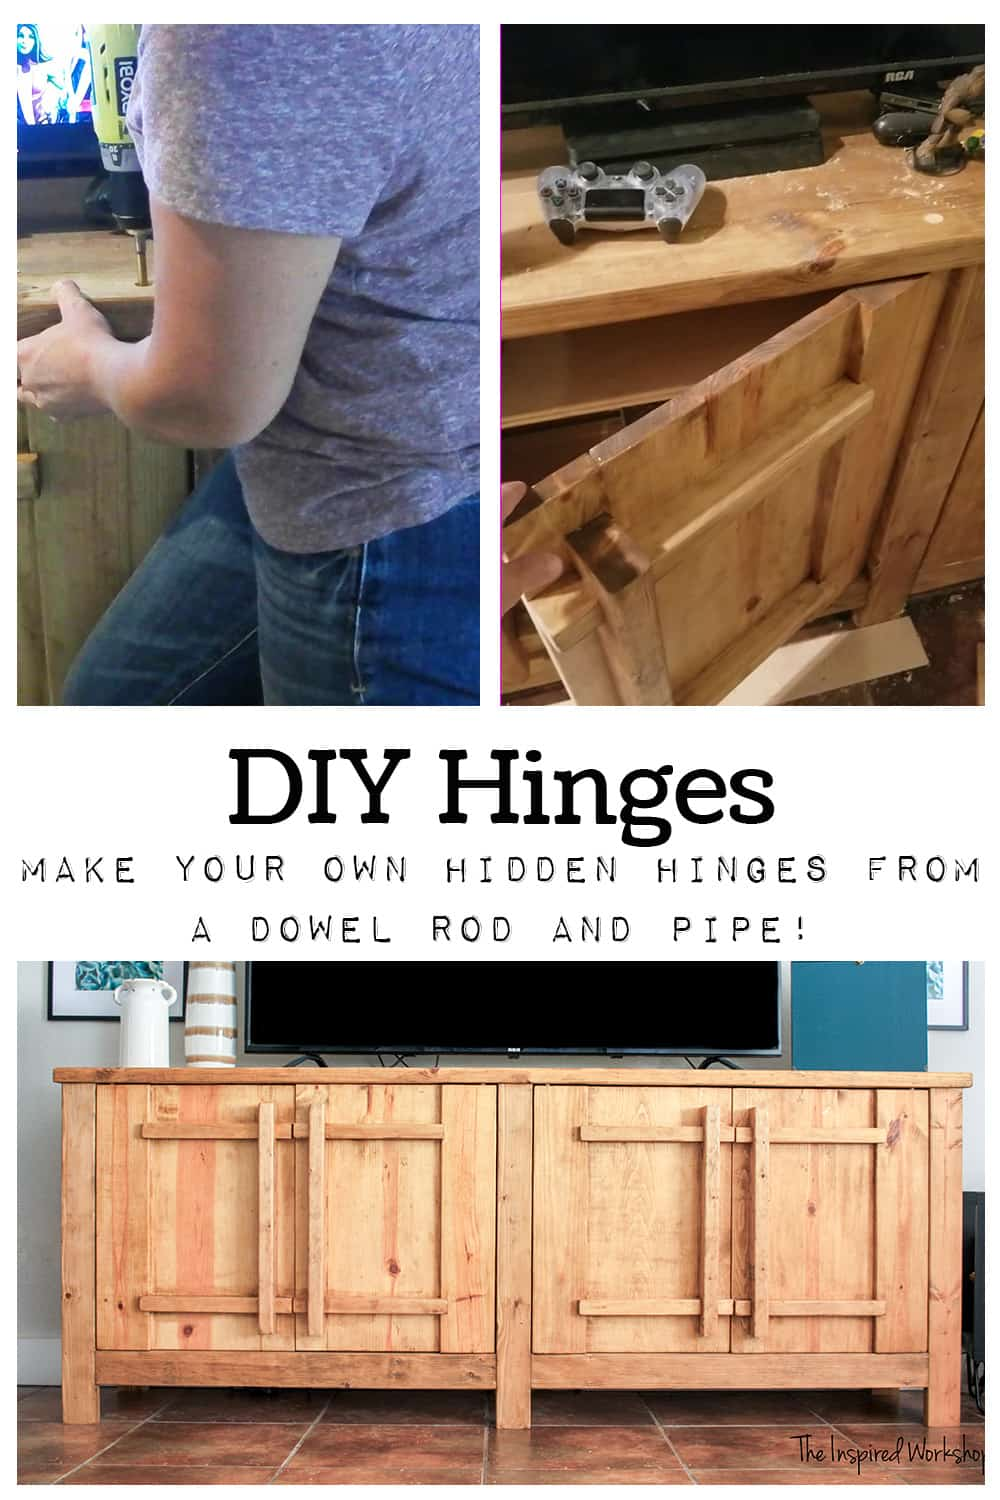 DIY Hinges - Make your own hinges from a dowel rod and pipe